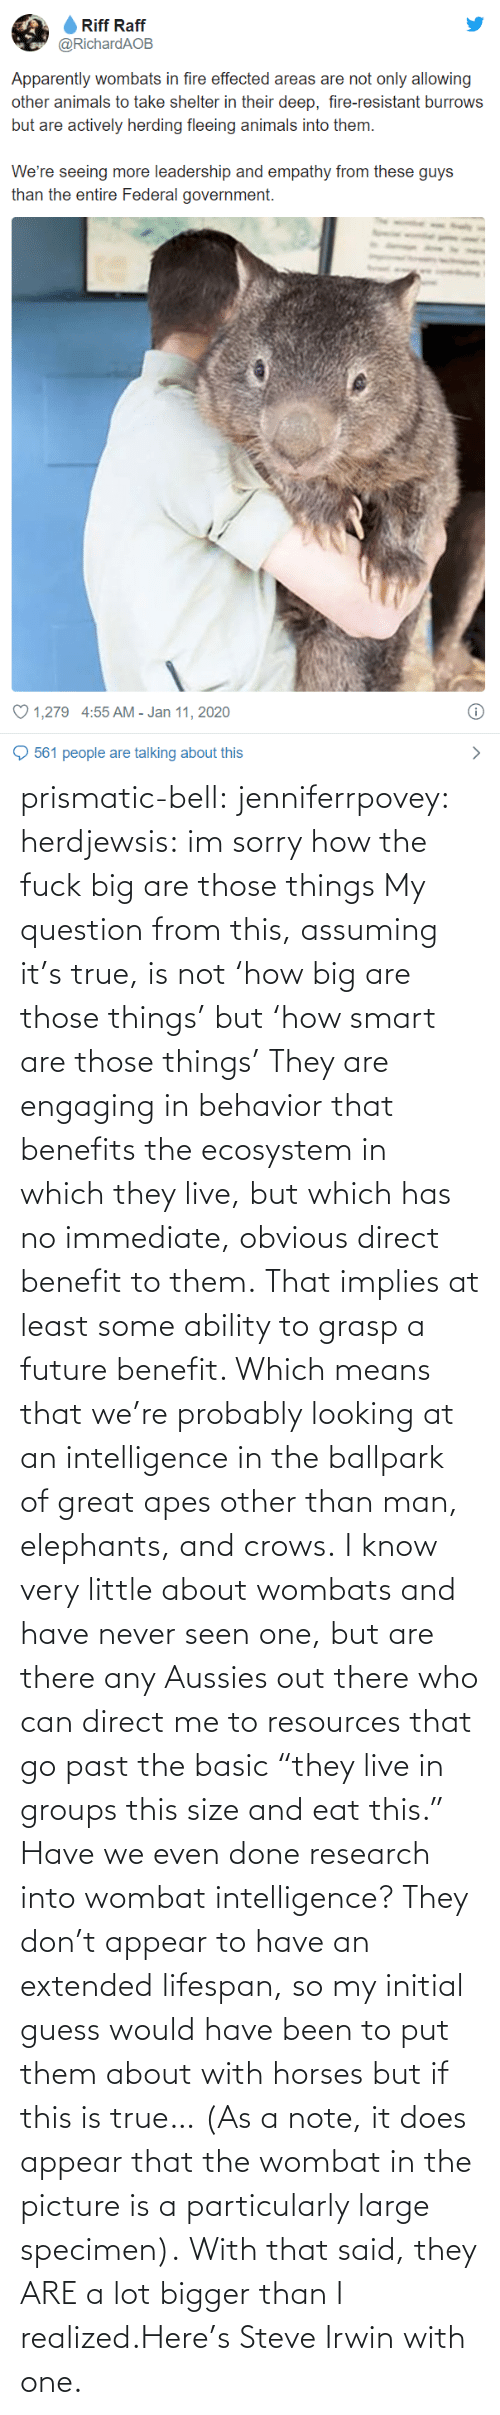 "Direct: prismatic-bell:  jenniferrpovey: herdjewsis: im sorry how the fuck big are those things My question from this, assuming it's true, is not 'how big are those things' but 'how smart are those things' They are engaging in behavior that benefits the ecosystem in which they live, but which has no immediate, obvious direct benefit to them. That implies at least some ability to grasp a future benefit. Which means that we're probably looking at an intelligence in the ballpark of great apes other than man, elephants, and crows. I know very little about wombats and have never seen one, but are there any Aussies out there who can direct me to resources that go past the basic ""they live in groups this size and eat this."" Have we even done research into wombat intelligence? They don't appear to have an extended lifespan, so my initial guess would have been to put them about with horses but if this is true… (As a note, it does appear that the wombat in the picture is a particularly large specimen).  With that said, they ARE a lot bigger than I realized.Here's Steve Irwin with one."